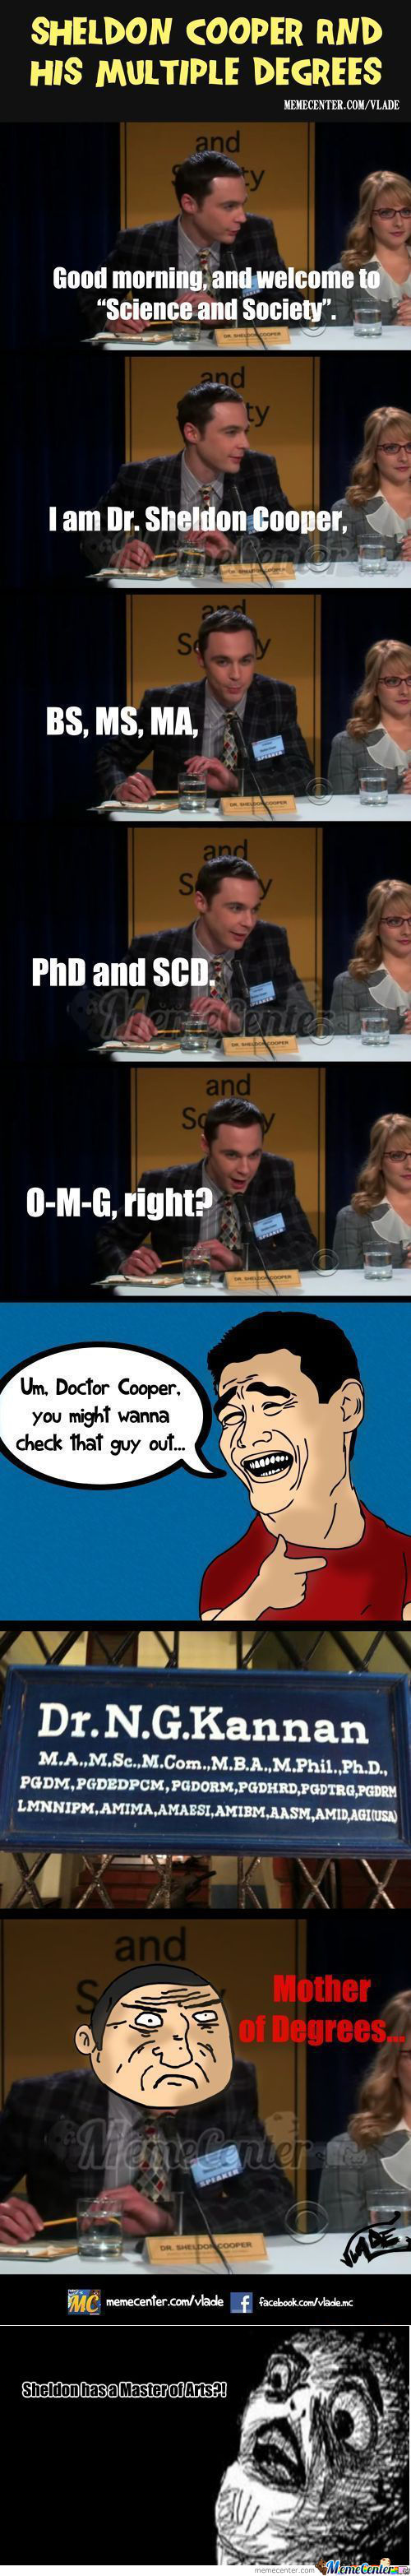 [RMX] Sheldon Cooper And His Degrees